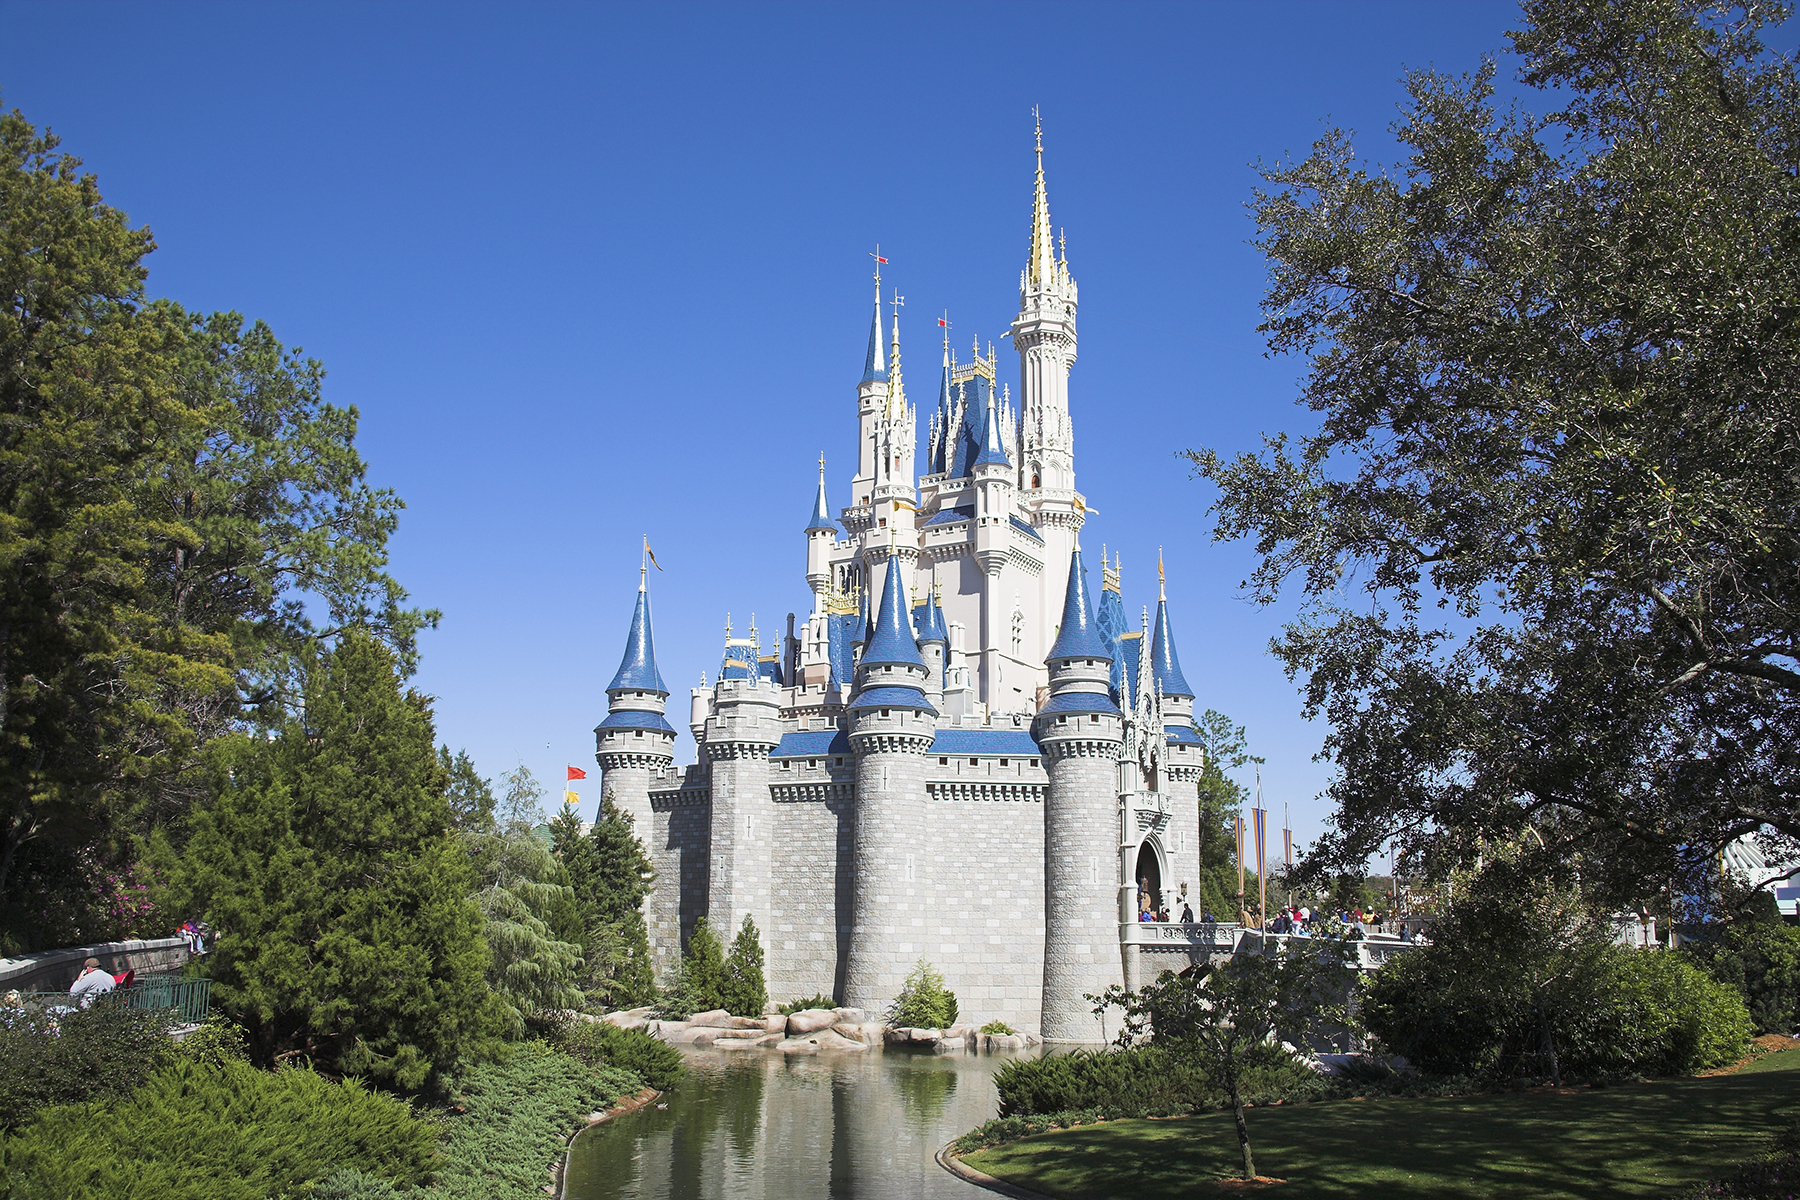 Sleeping Beauty's Castle, Disney World